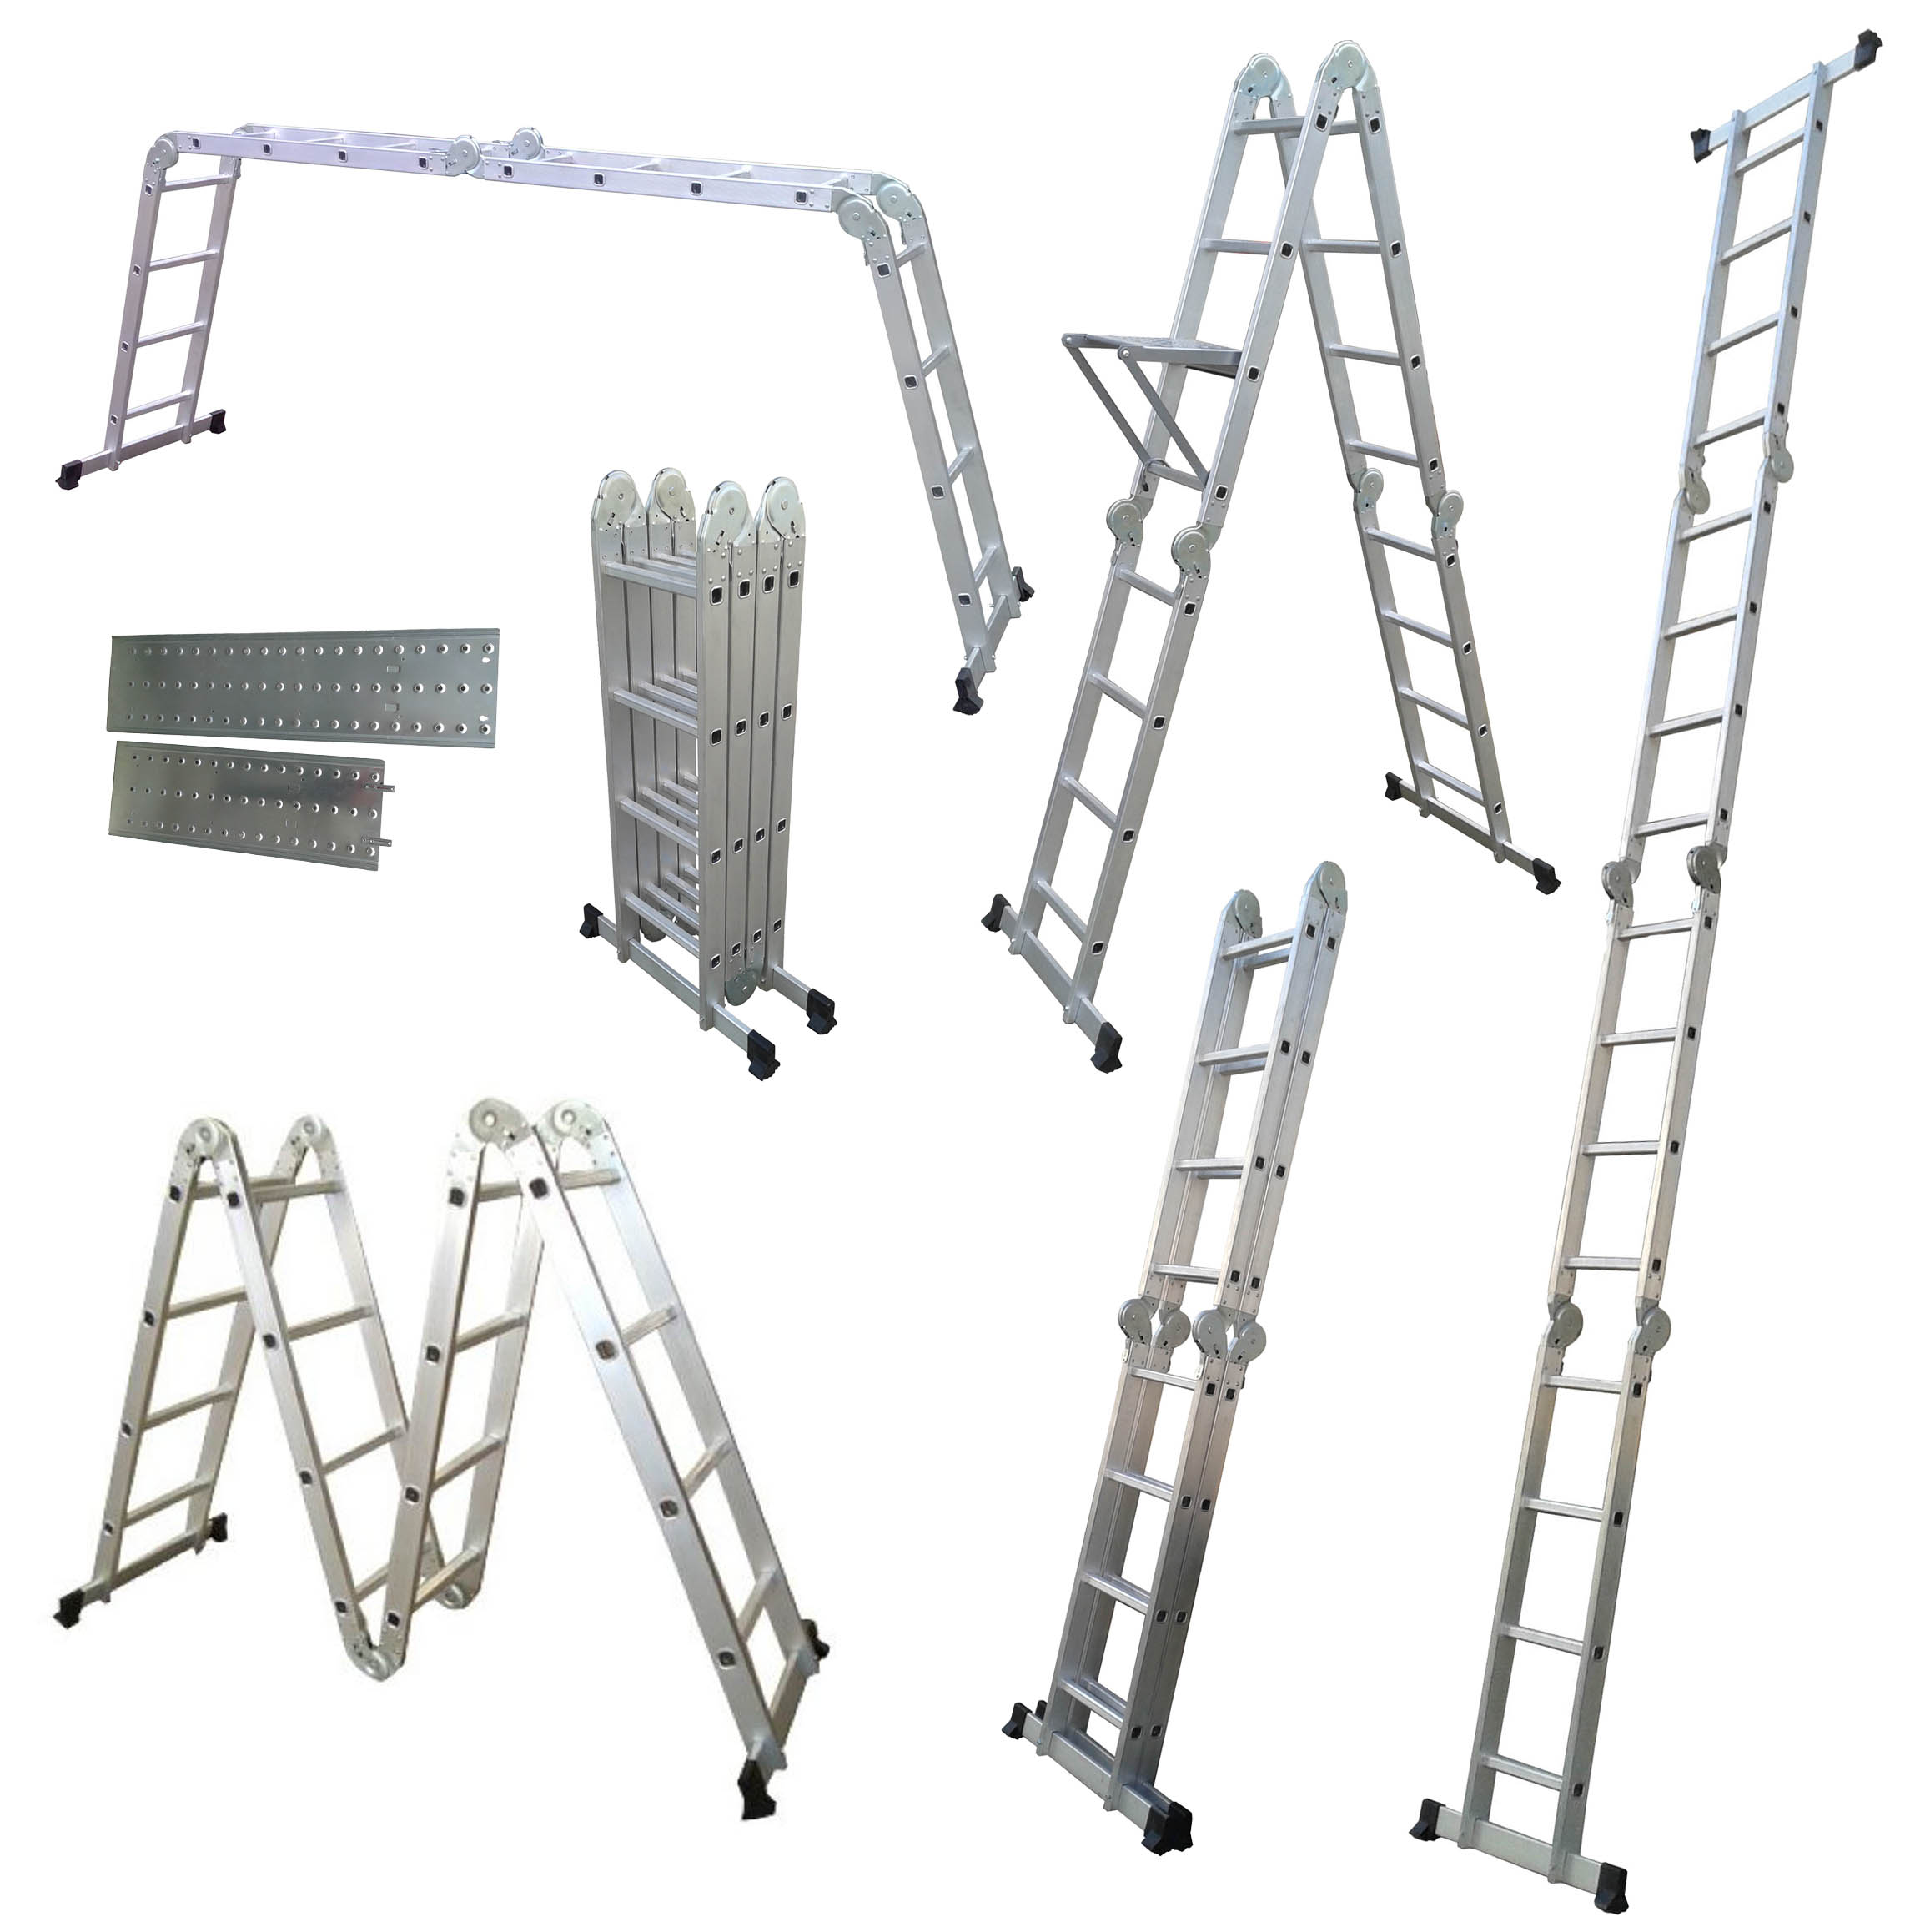 Foxhunter 4 7m Multi Purpose 14 In 1 Step Ladder 2 Plates